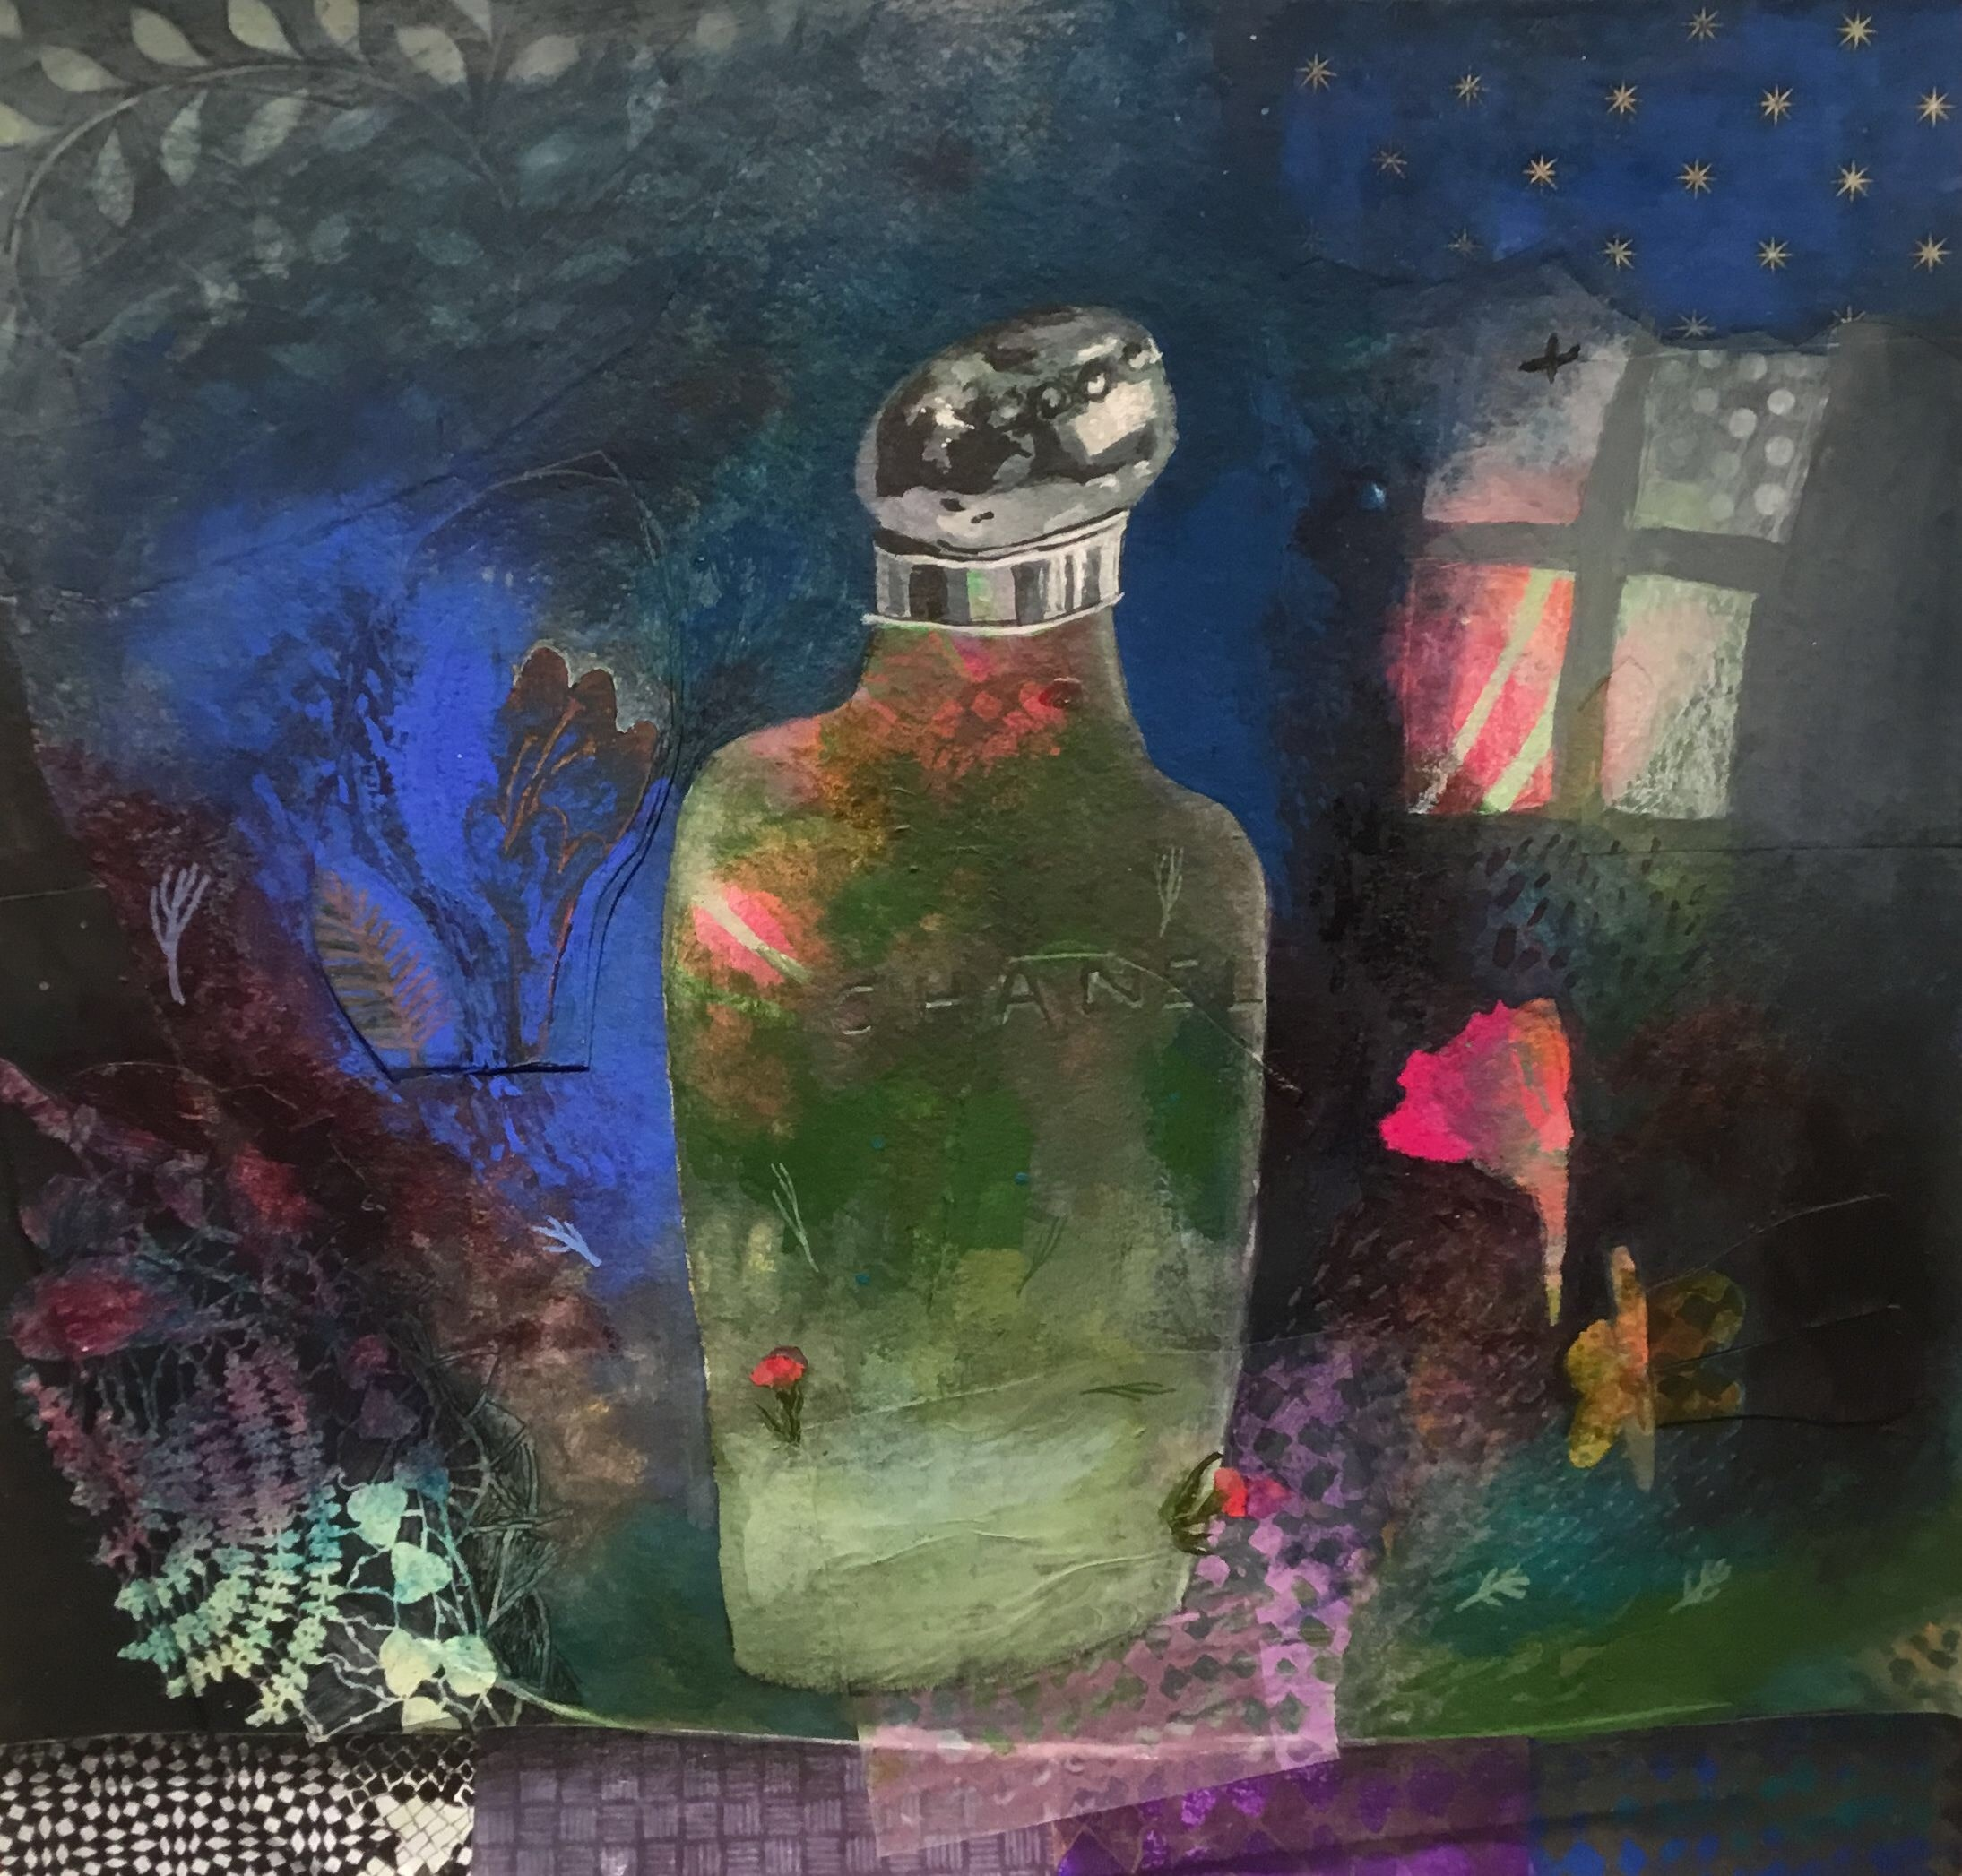 """<span class=""""link fancybox-details-link""""><a href=""""/artists/146-gertie-young/works/11132-gertie-young-night-scent/"""">View Detail Page</a></span><div class=""""artist""""><span class=""""artist""""><strong>Gertie Young</strong></span></div><div class=""""title""""><em>Night Scent</em></div><div class=""""medium"""">watercolour, gouache & collage</div><div class=""""dimensions"""">43x43cm</div><div class=""""price"""">£360.00</div>"""